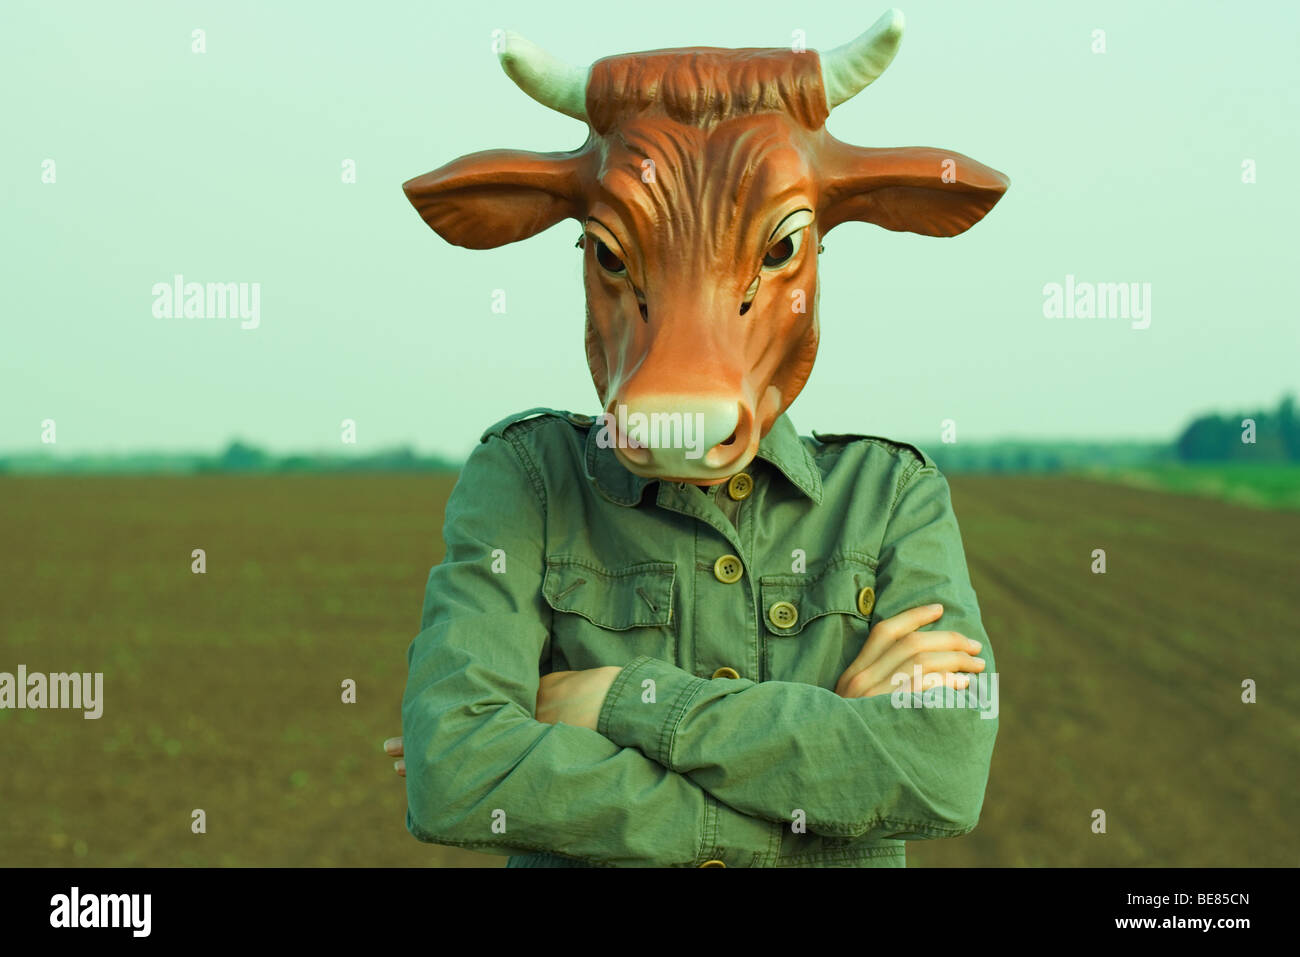 Person wearing bull mask, arms folded across chest - Stock Image